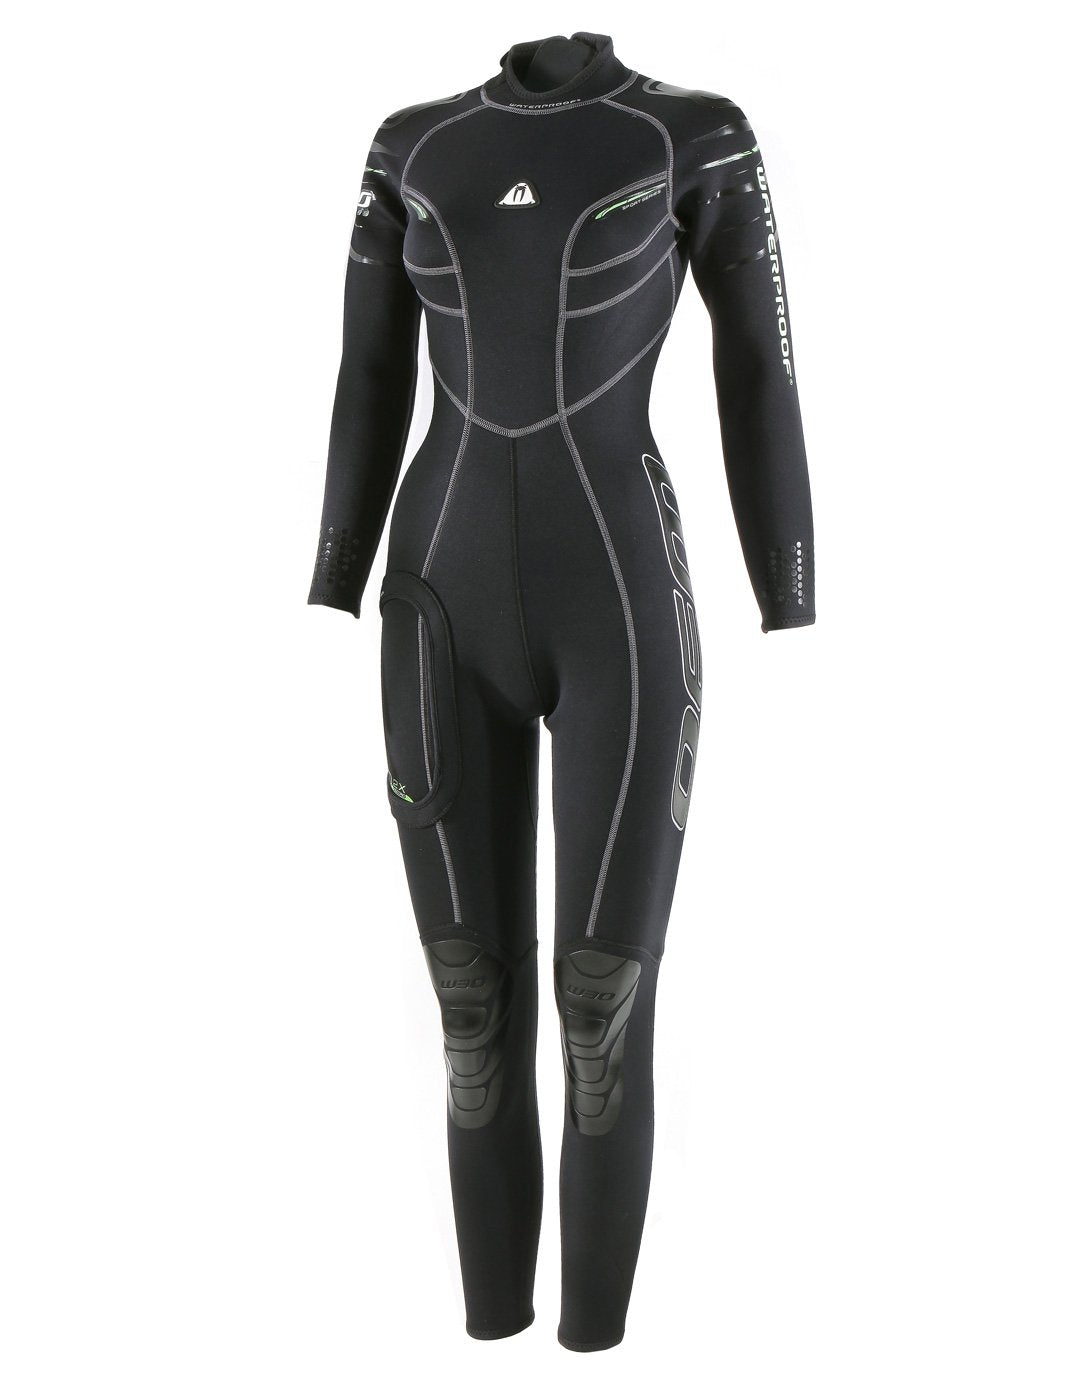 Image of WaterProof Womens W30 2.5mm Wetsuit